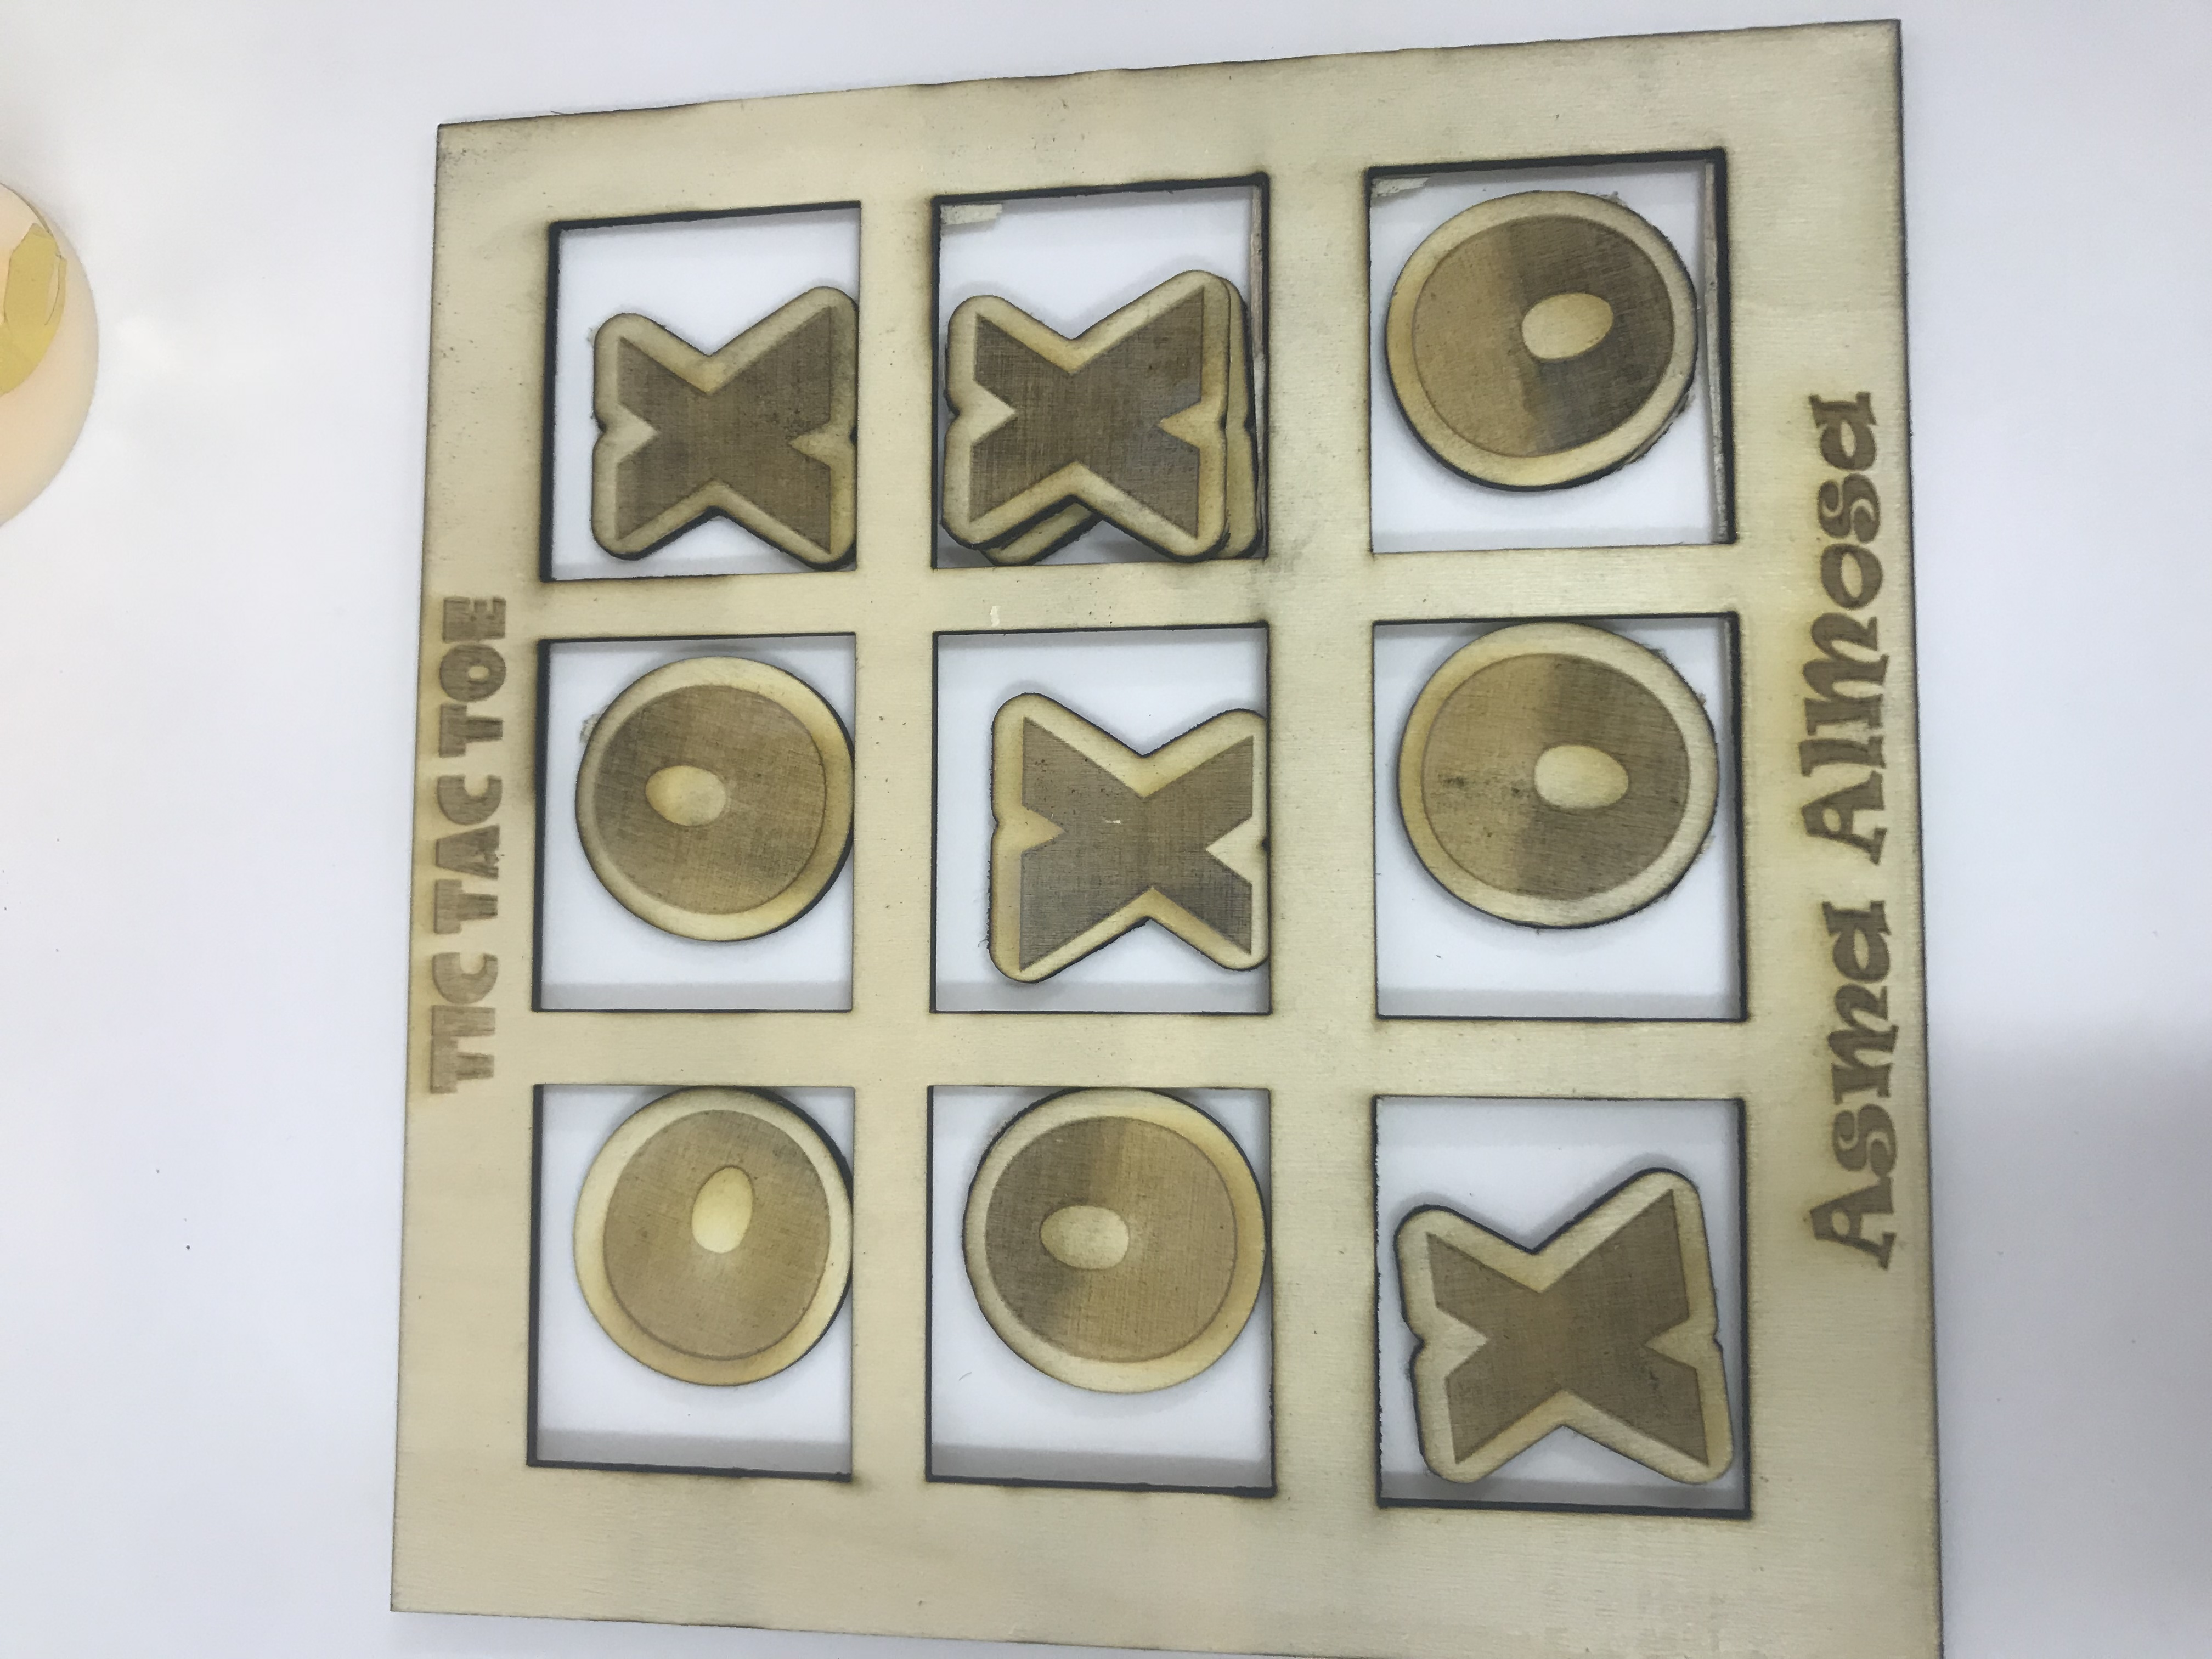 Tic tac toe by laser cutting